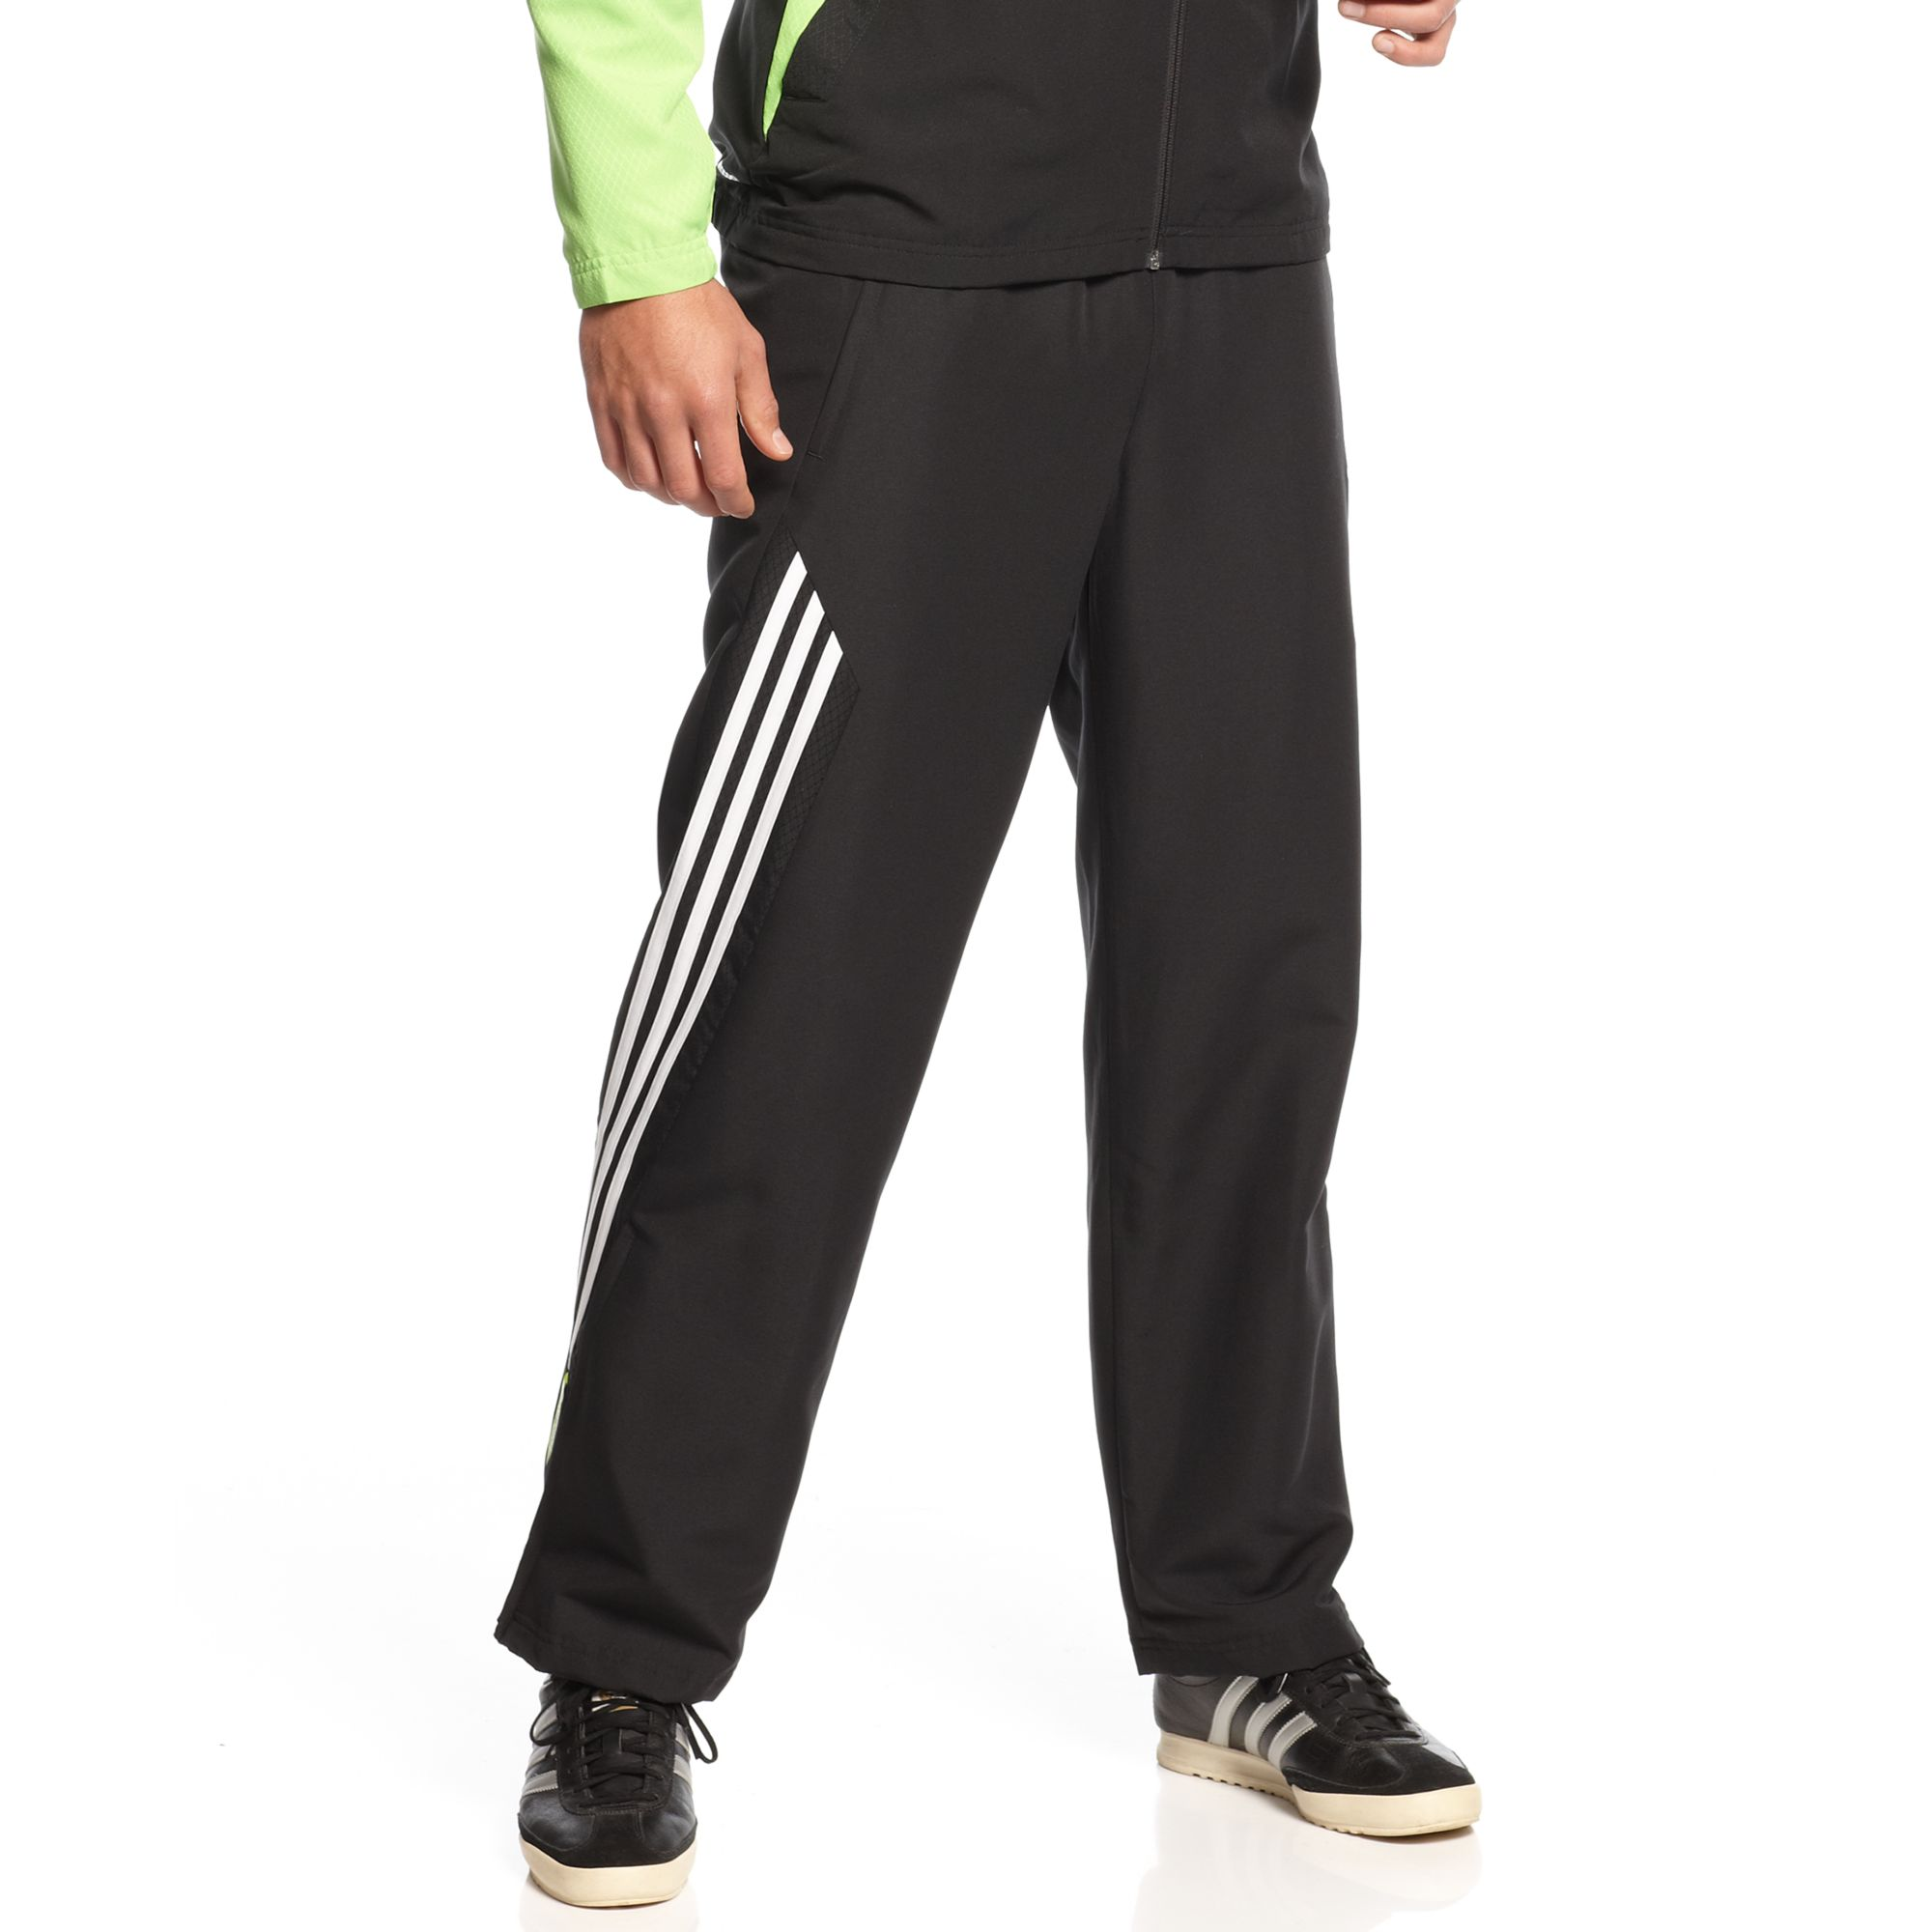 e32664c0c ... get lyst adidas predator climacool soccer pants in black for men d750d  4463a